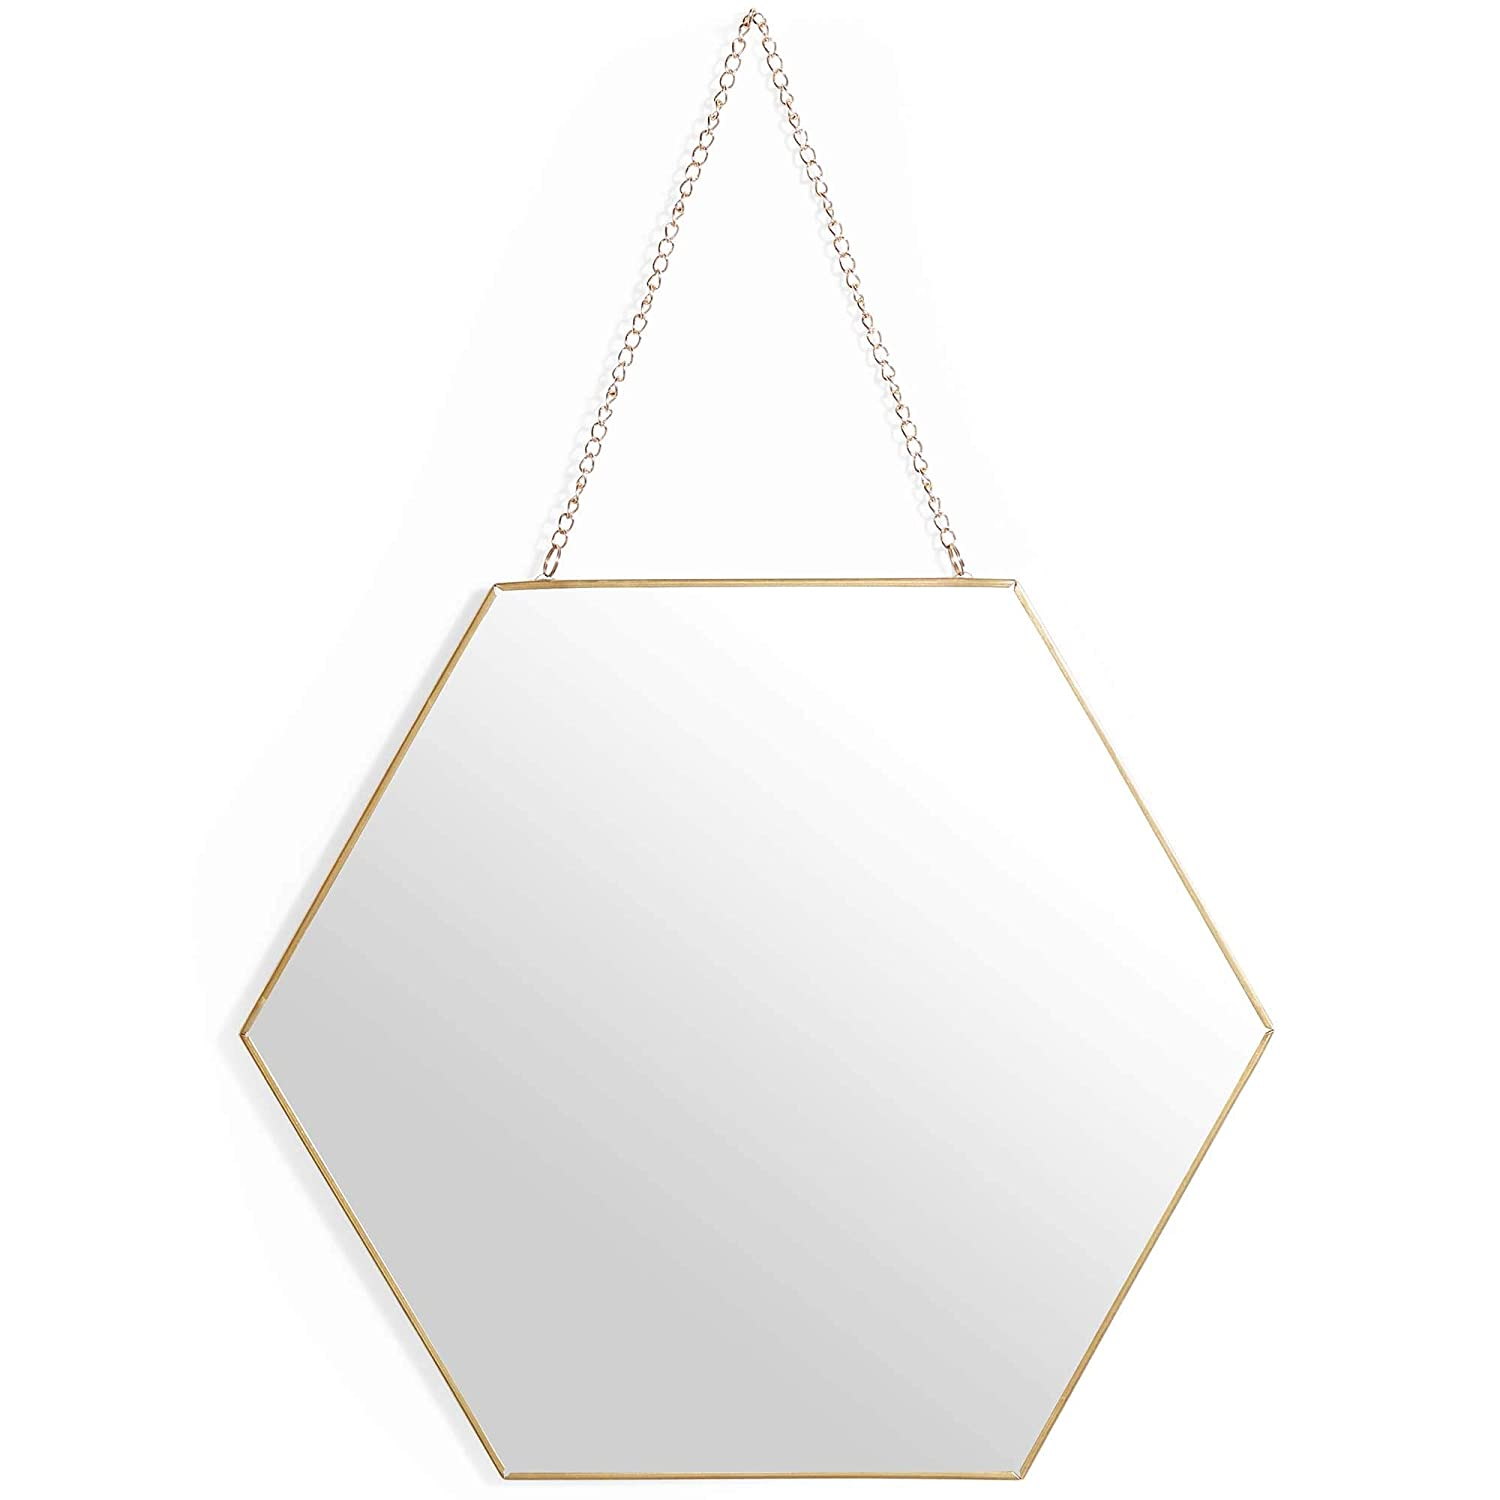 Beautify Hexagon Mirror – Antique Brass Finish – Hanging Chain – Vintage Style 30 x 26cm